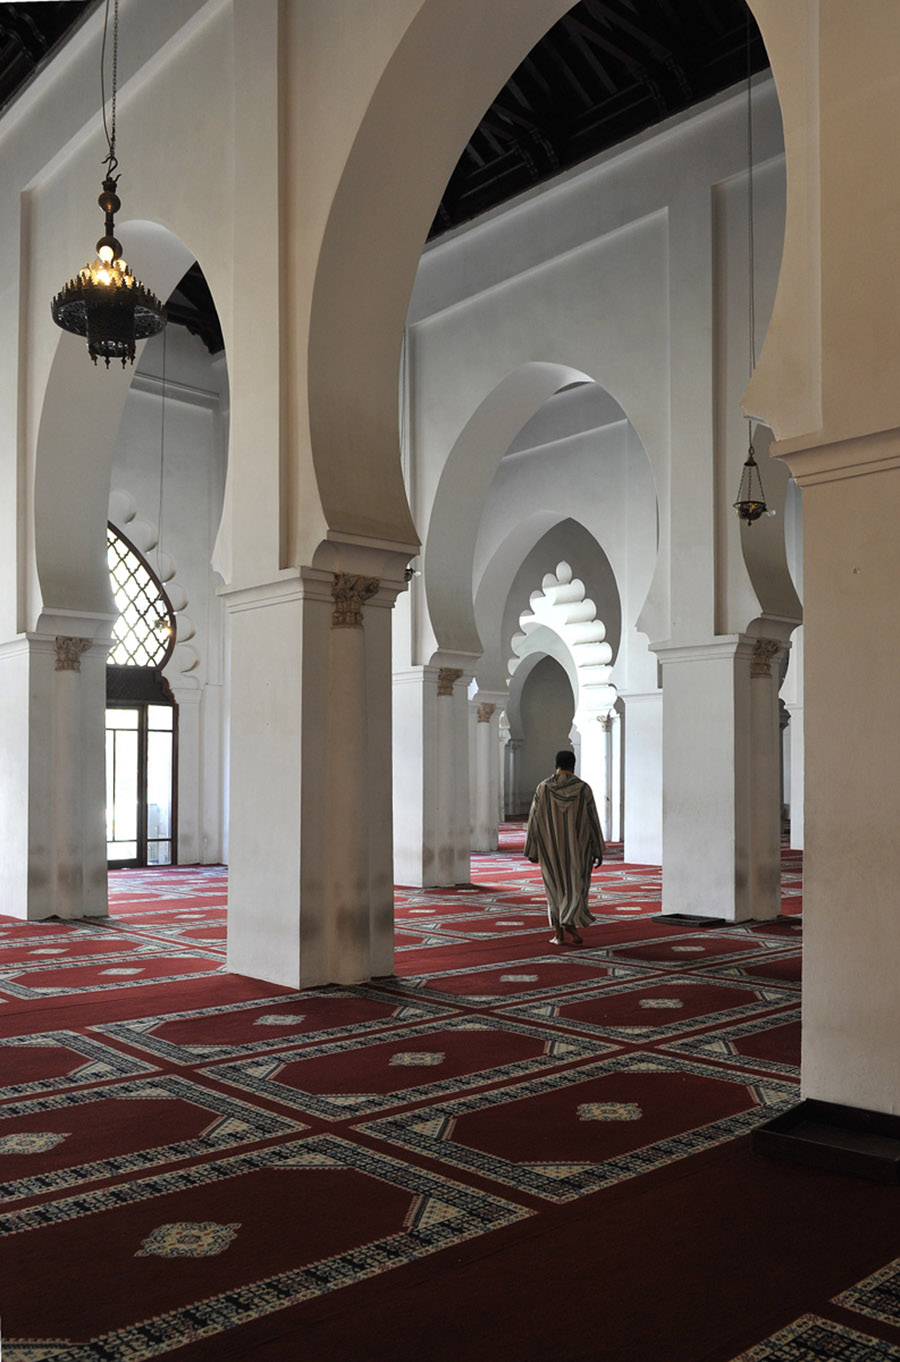 The Muezzin of the Koutoubia walking towards the minaret to issue the call to prayer, Marrakech, 2011